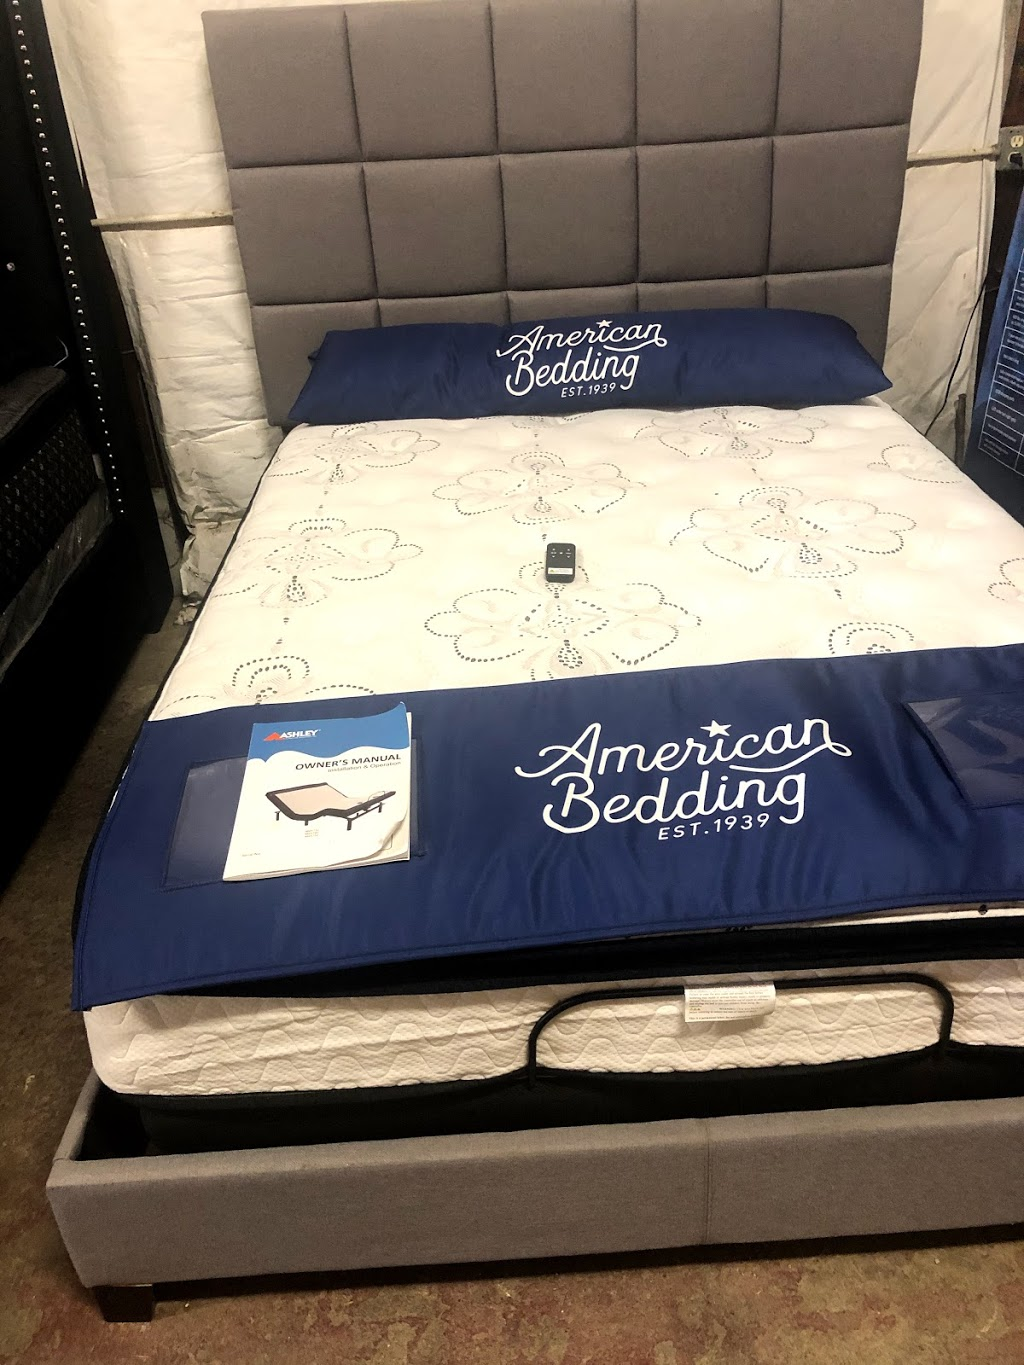 Discount Mattresses and More - furniture store  | Photo 7 of 8 | Address: 7625 Michigan Rd, Indianapolis, IN 46268, USA | Phone: (317) 480-6463